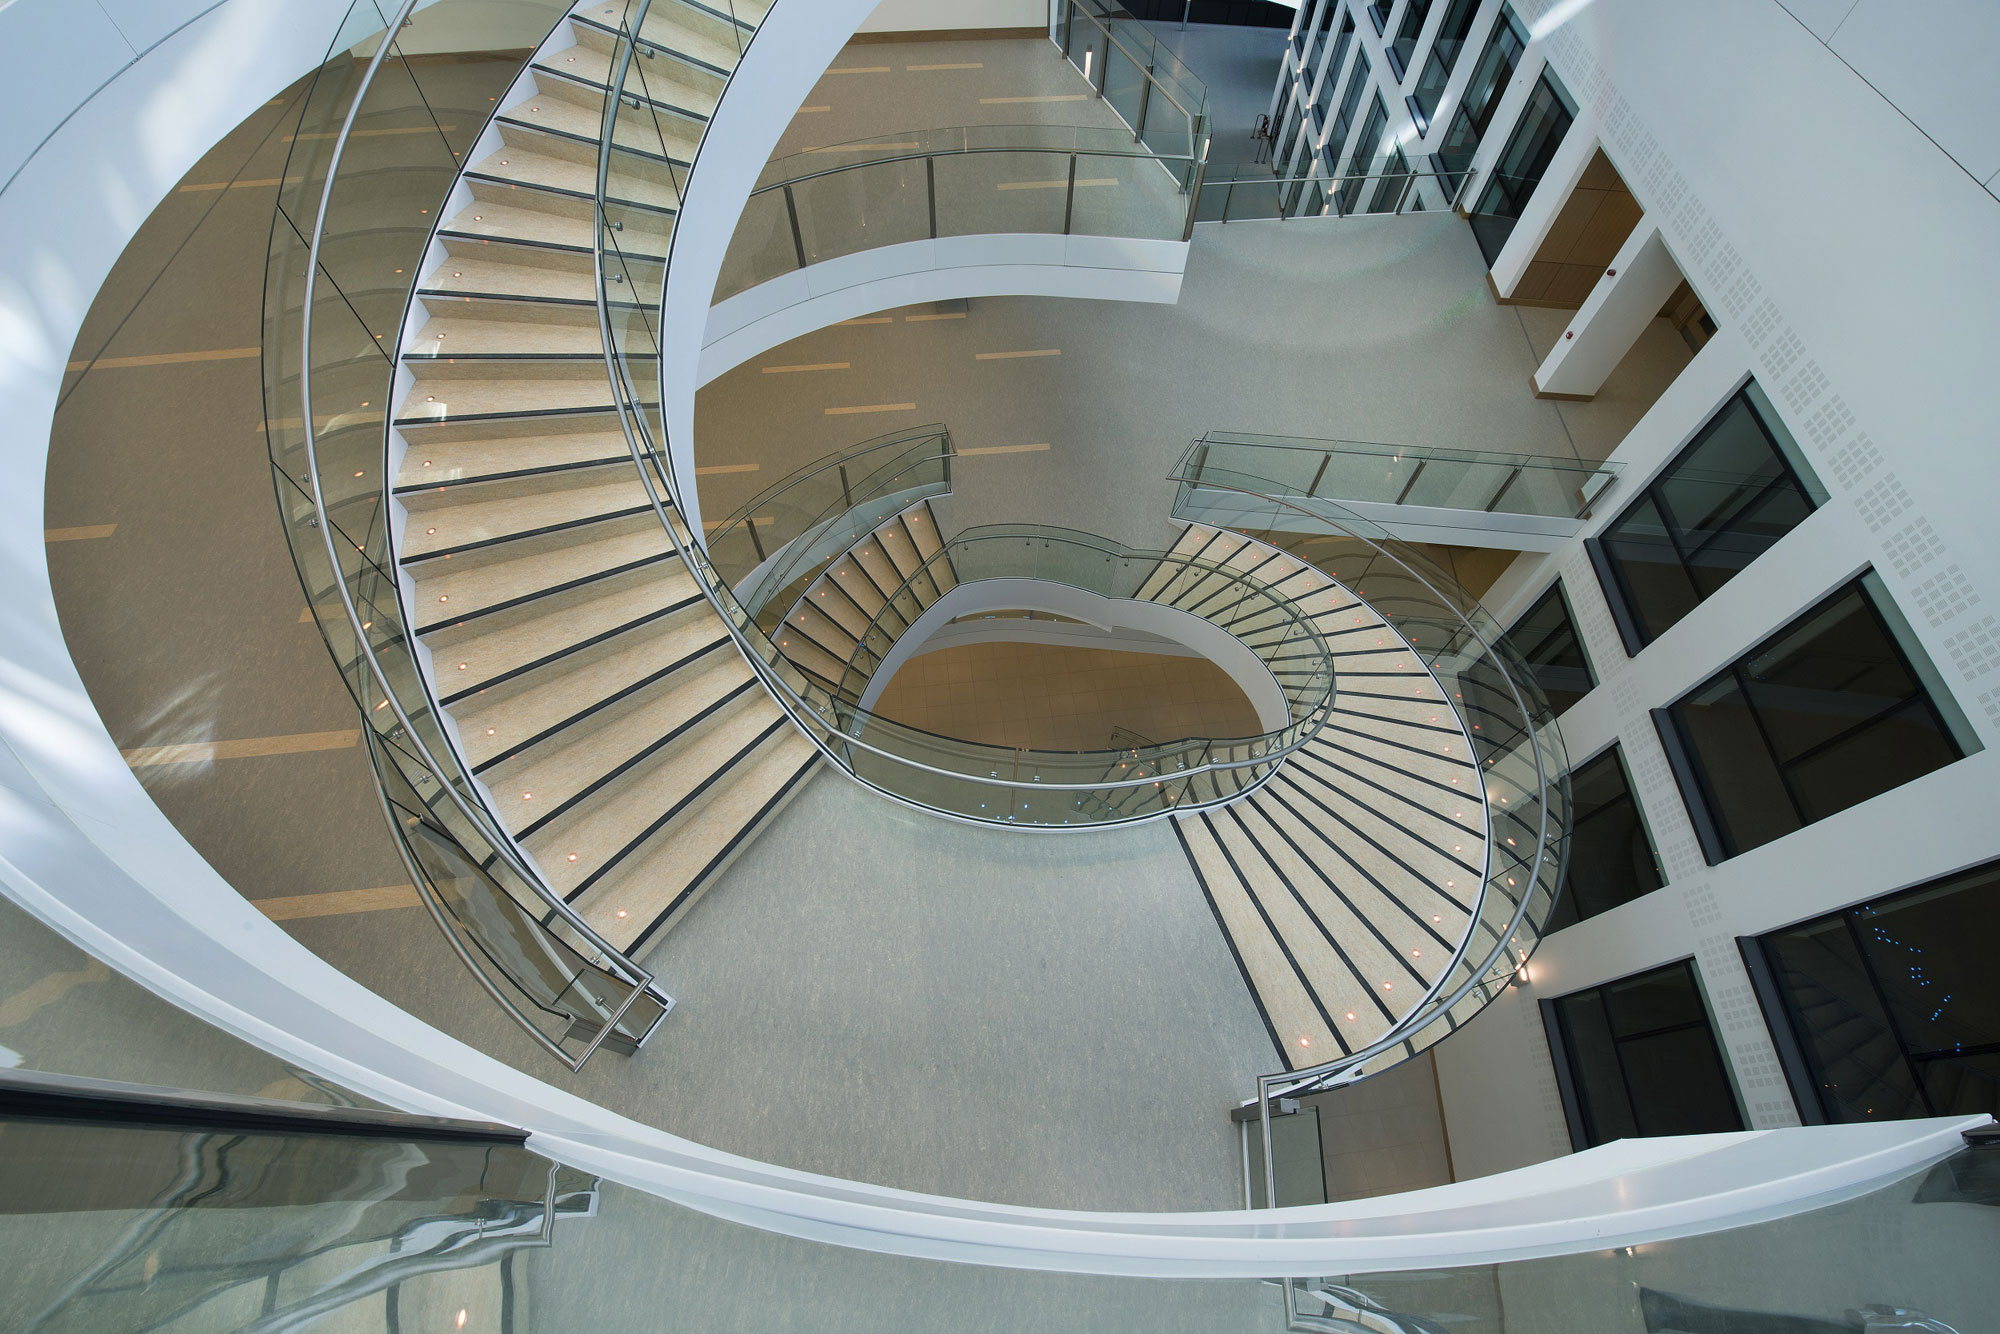 Helical stairs structural glazing infills tsa for Architectural design services near me